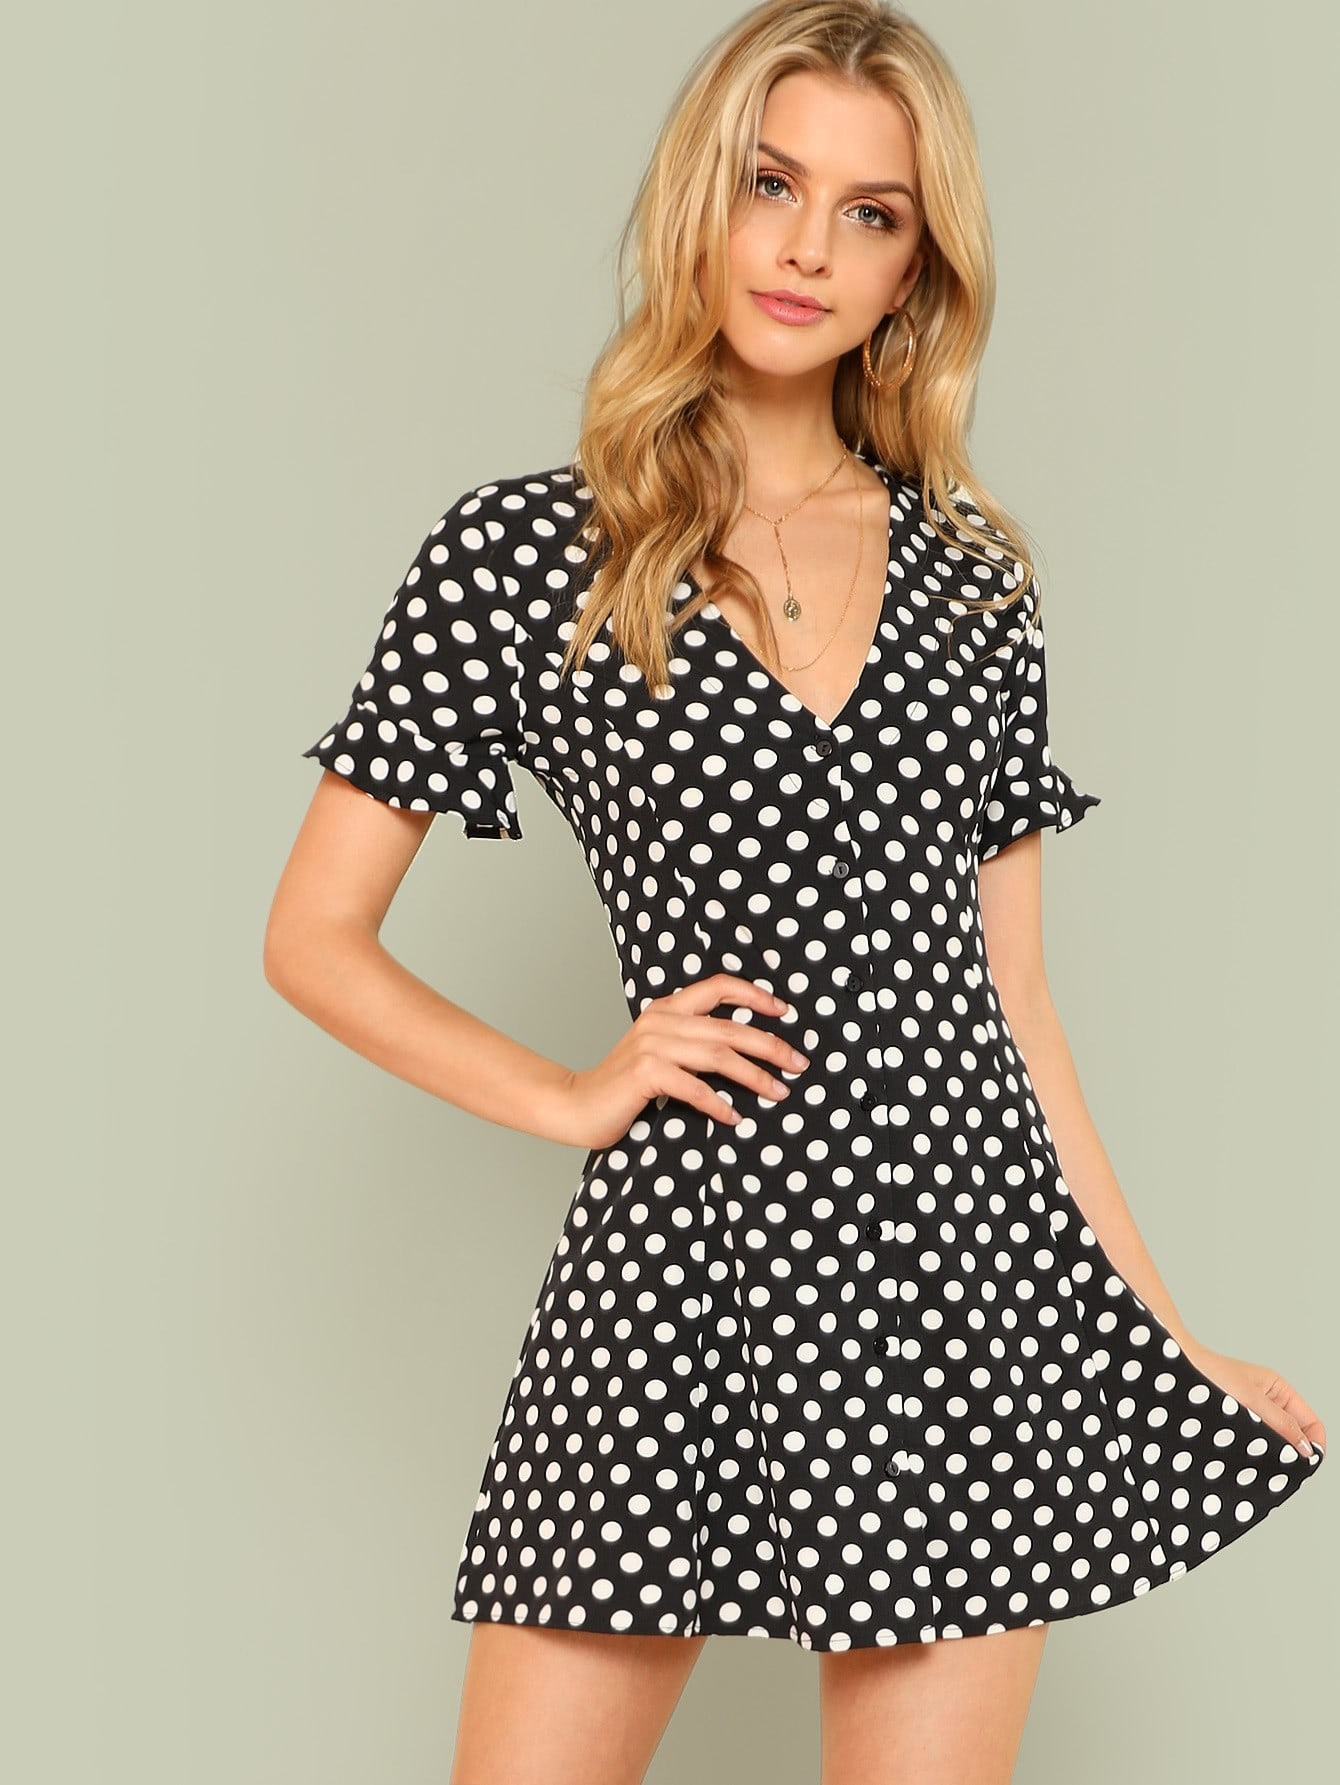 Flounce Sleeve Polka Dot Button Up Dress flounce one shoulder polka dot dress